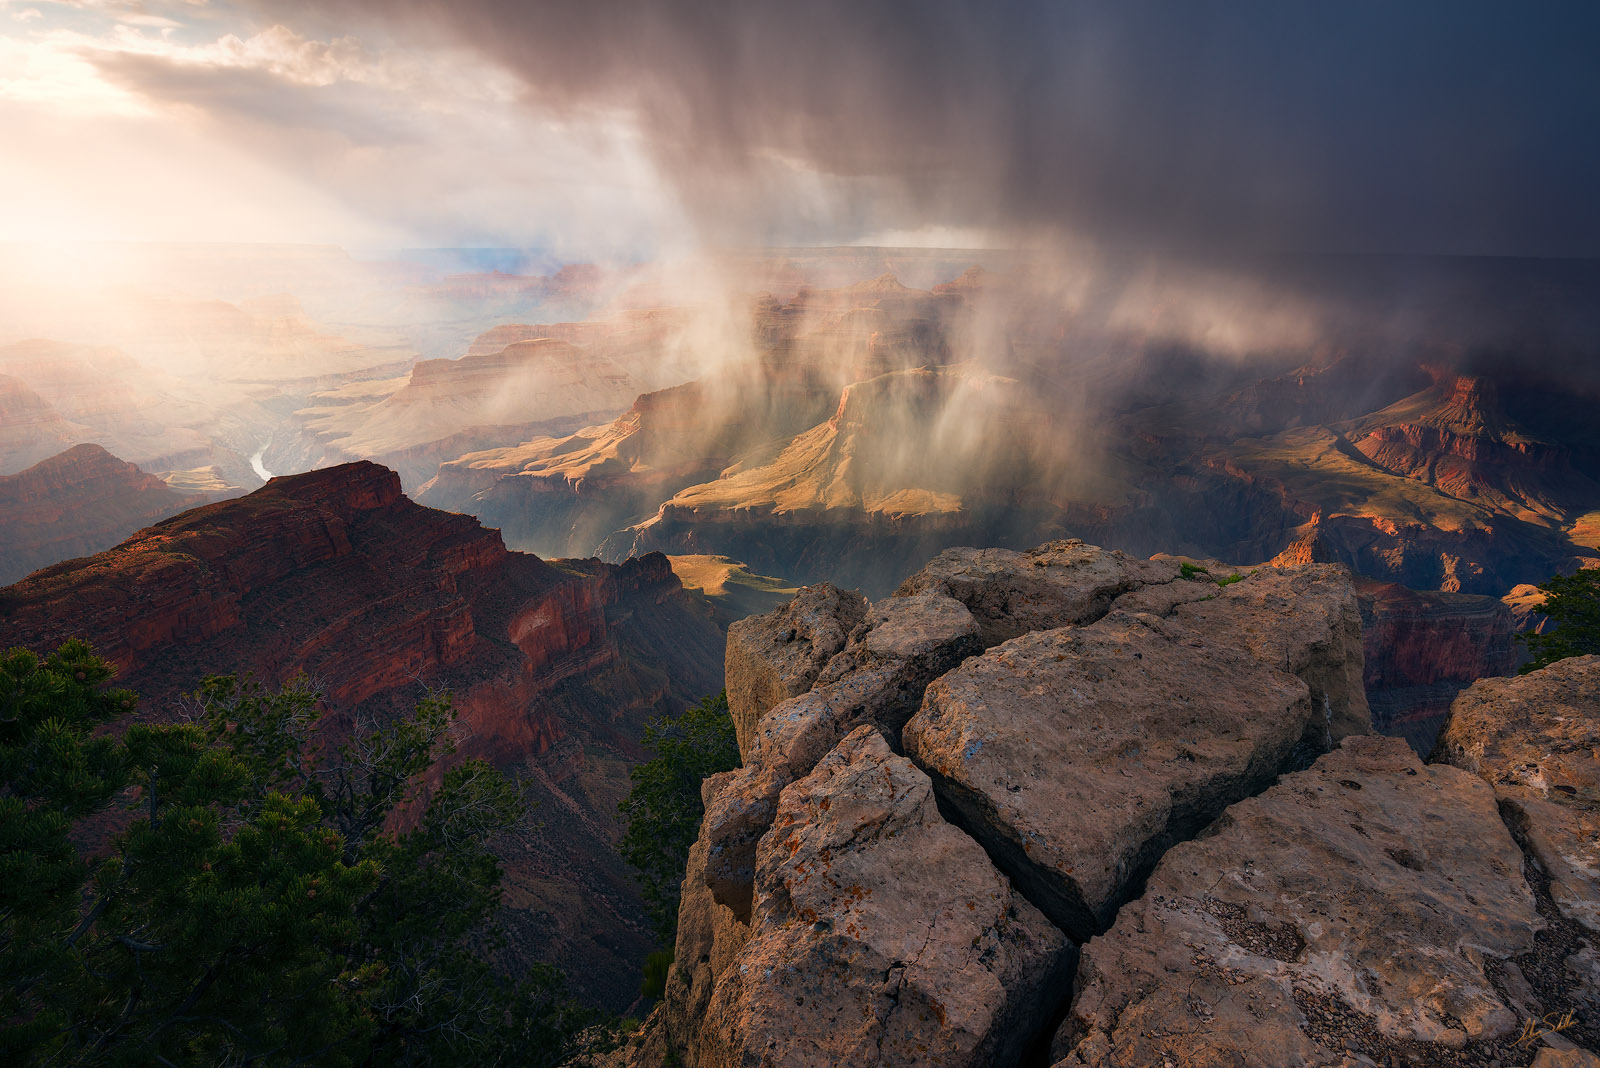 Arizona, Colorado River, Grand Canyon, National Park, Rain, South Rim, Storm, Moran, Hopi Point, photo